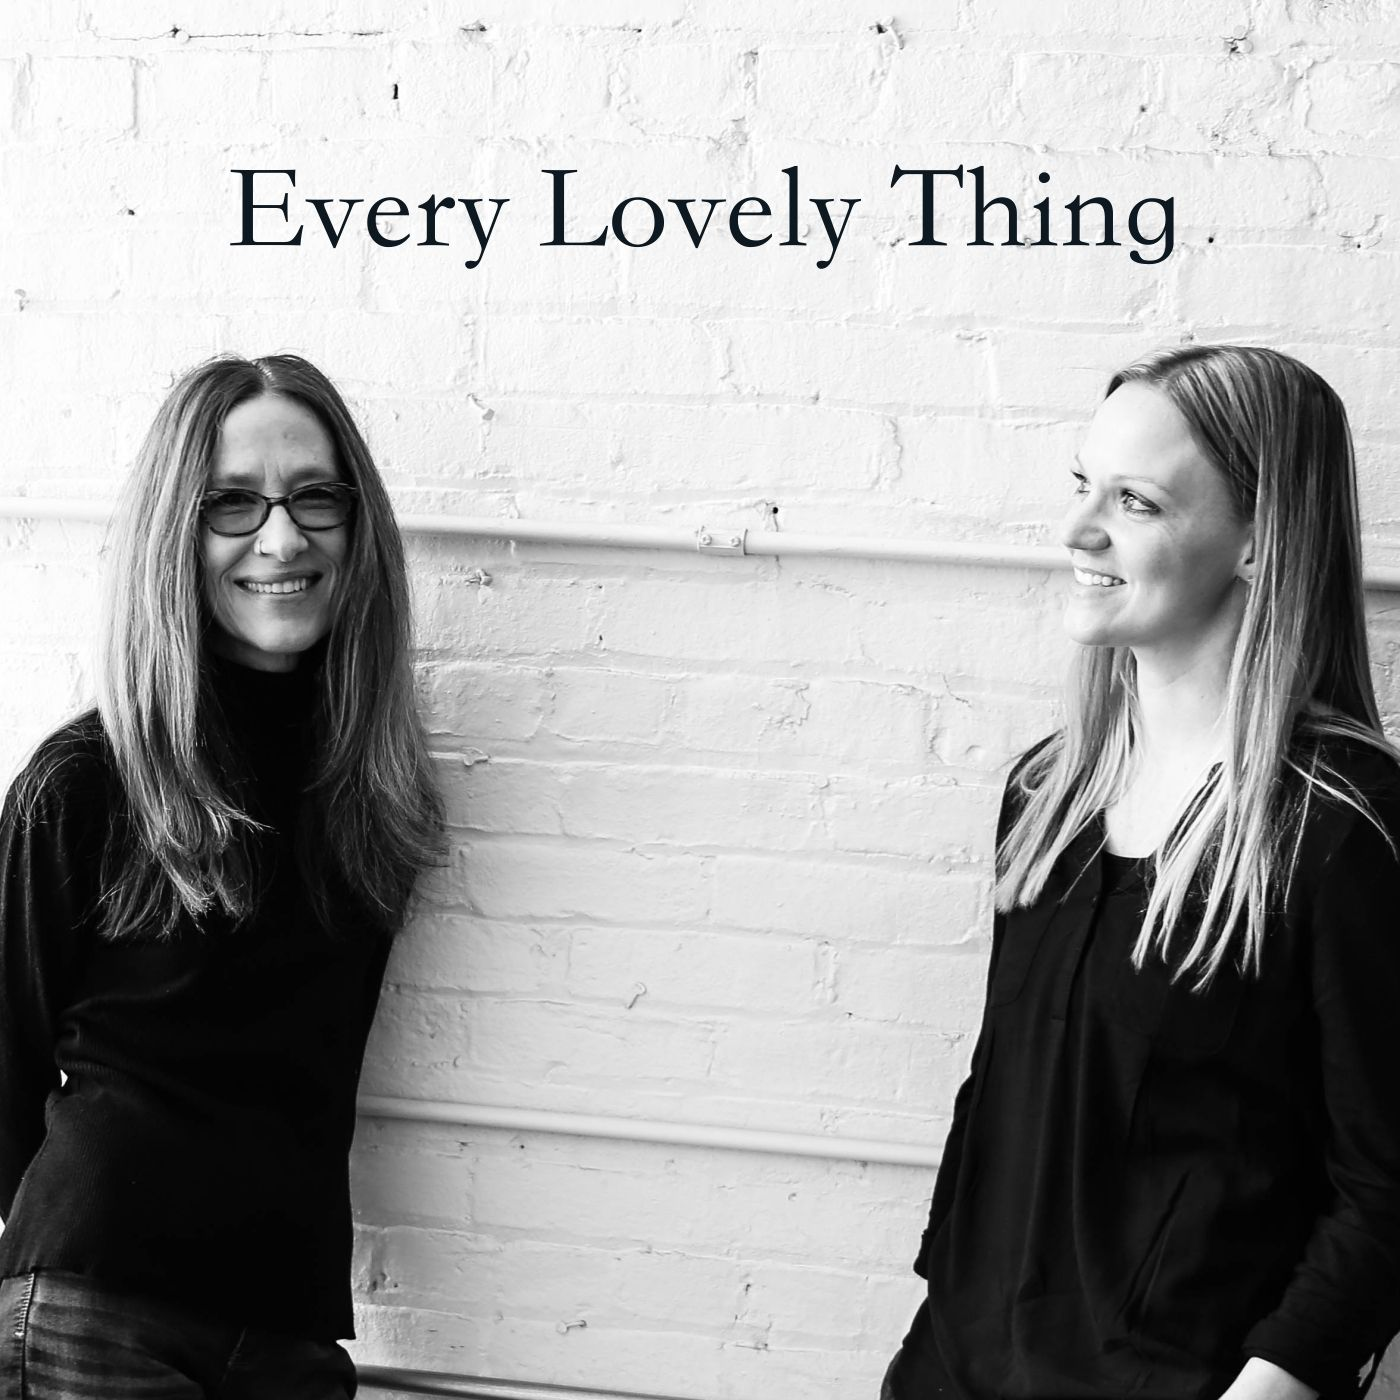 Every Lovely Thing is a music duo from Dayton Ohio formed by singer